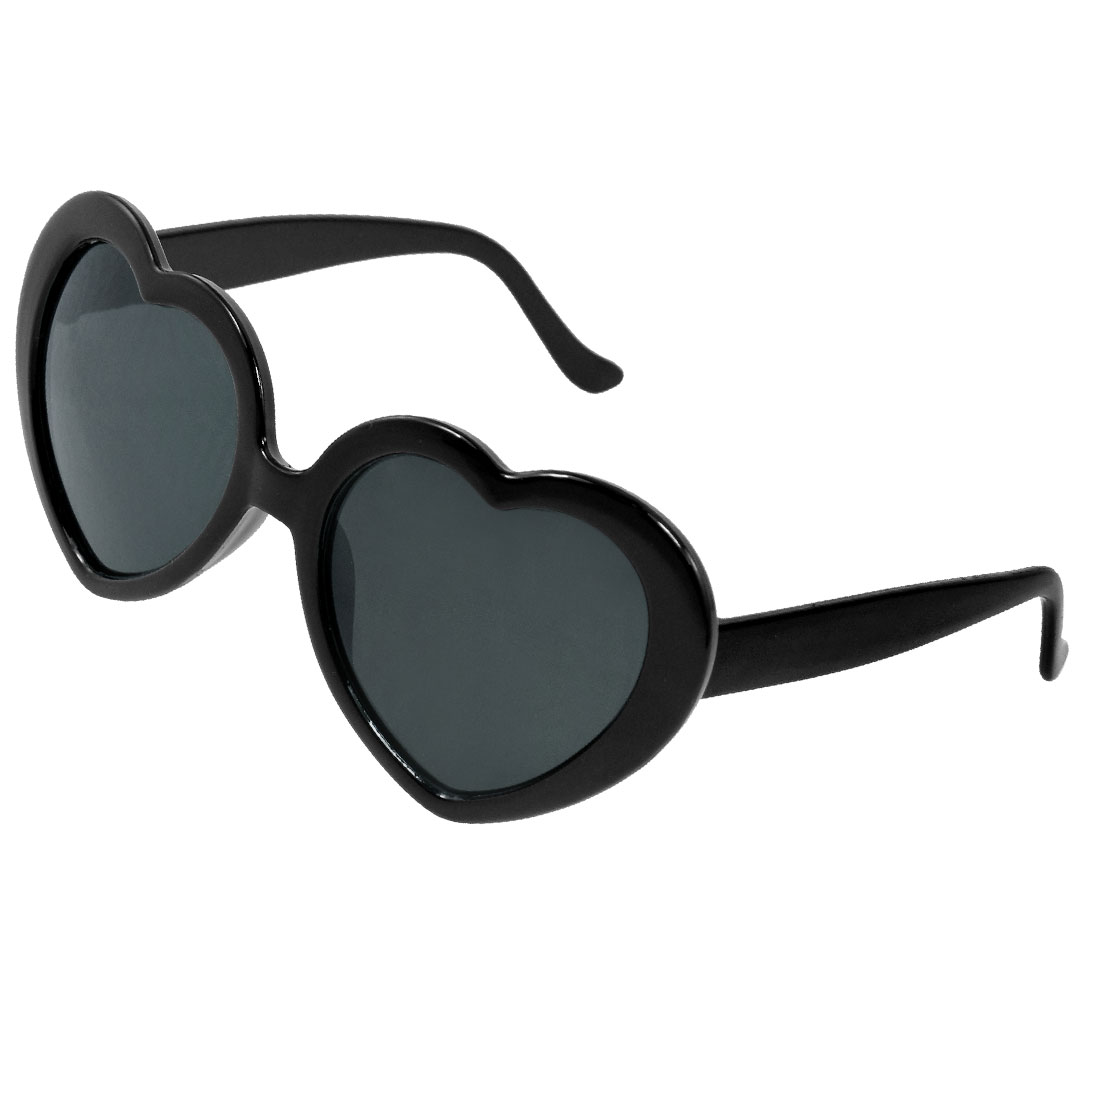 Plastic Arms Black Heart Shaped Frame Leisure Sunglasses for Child